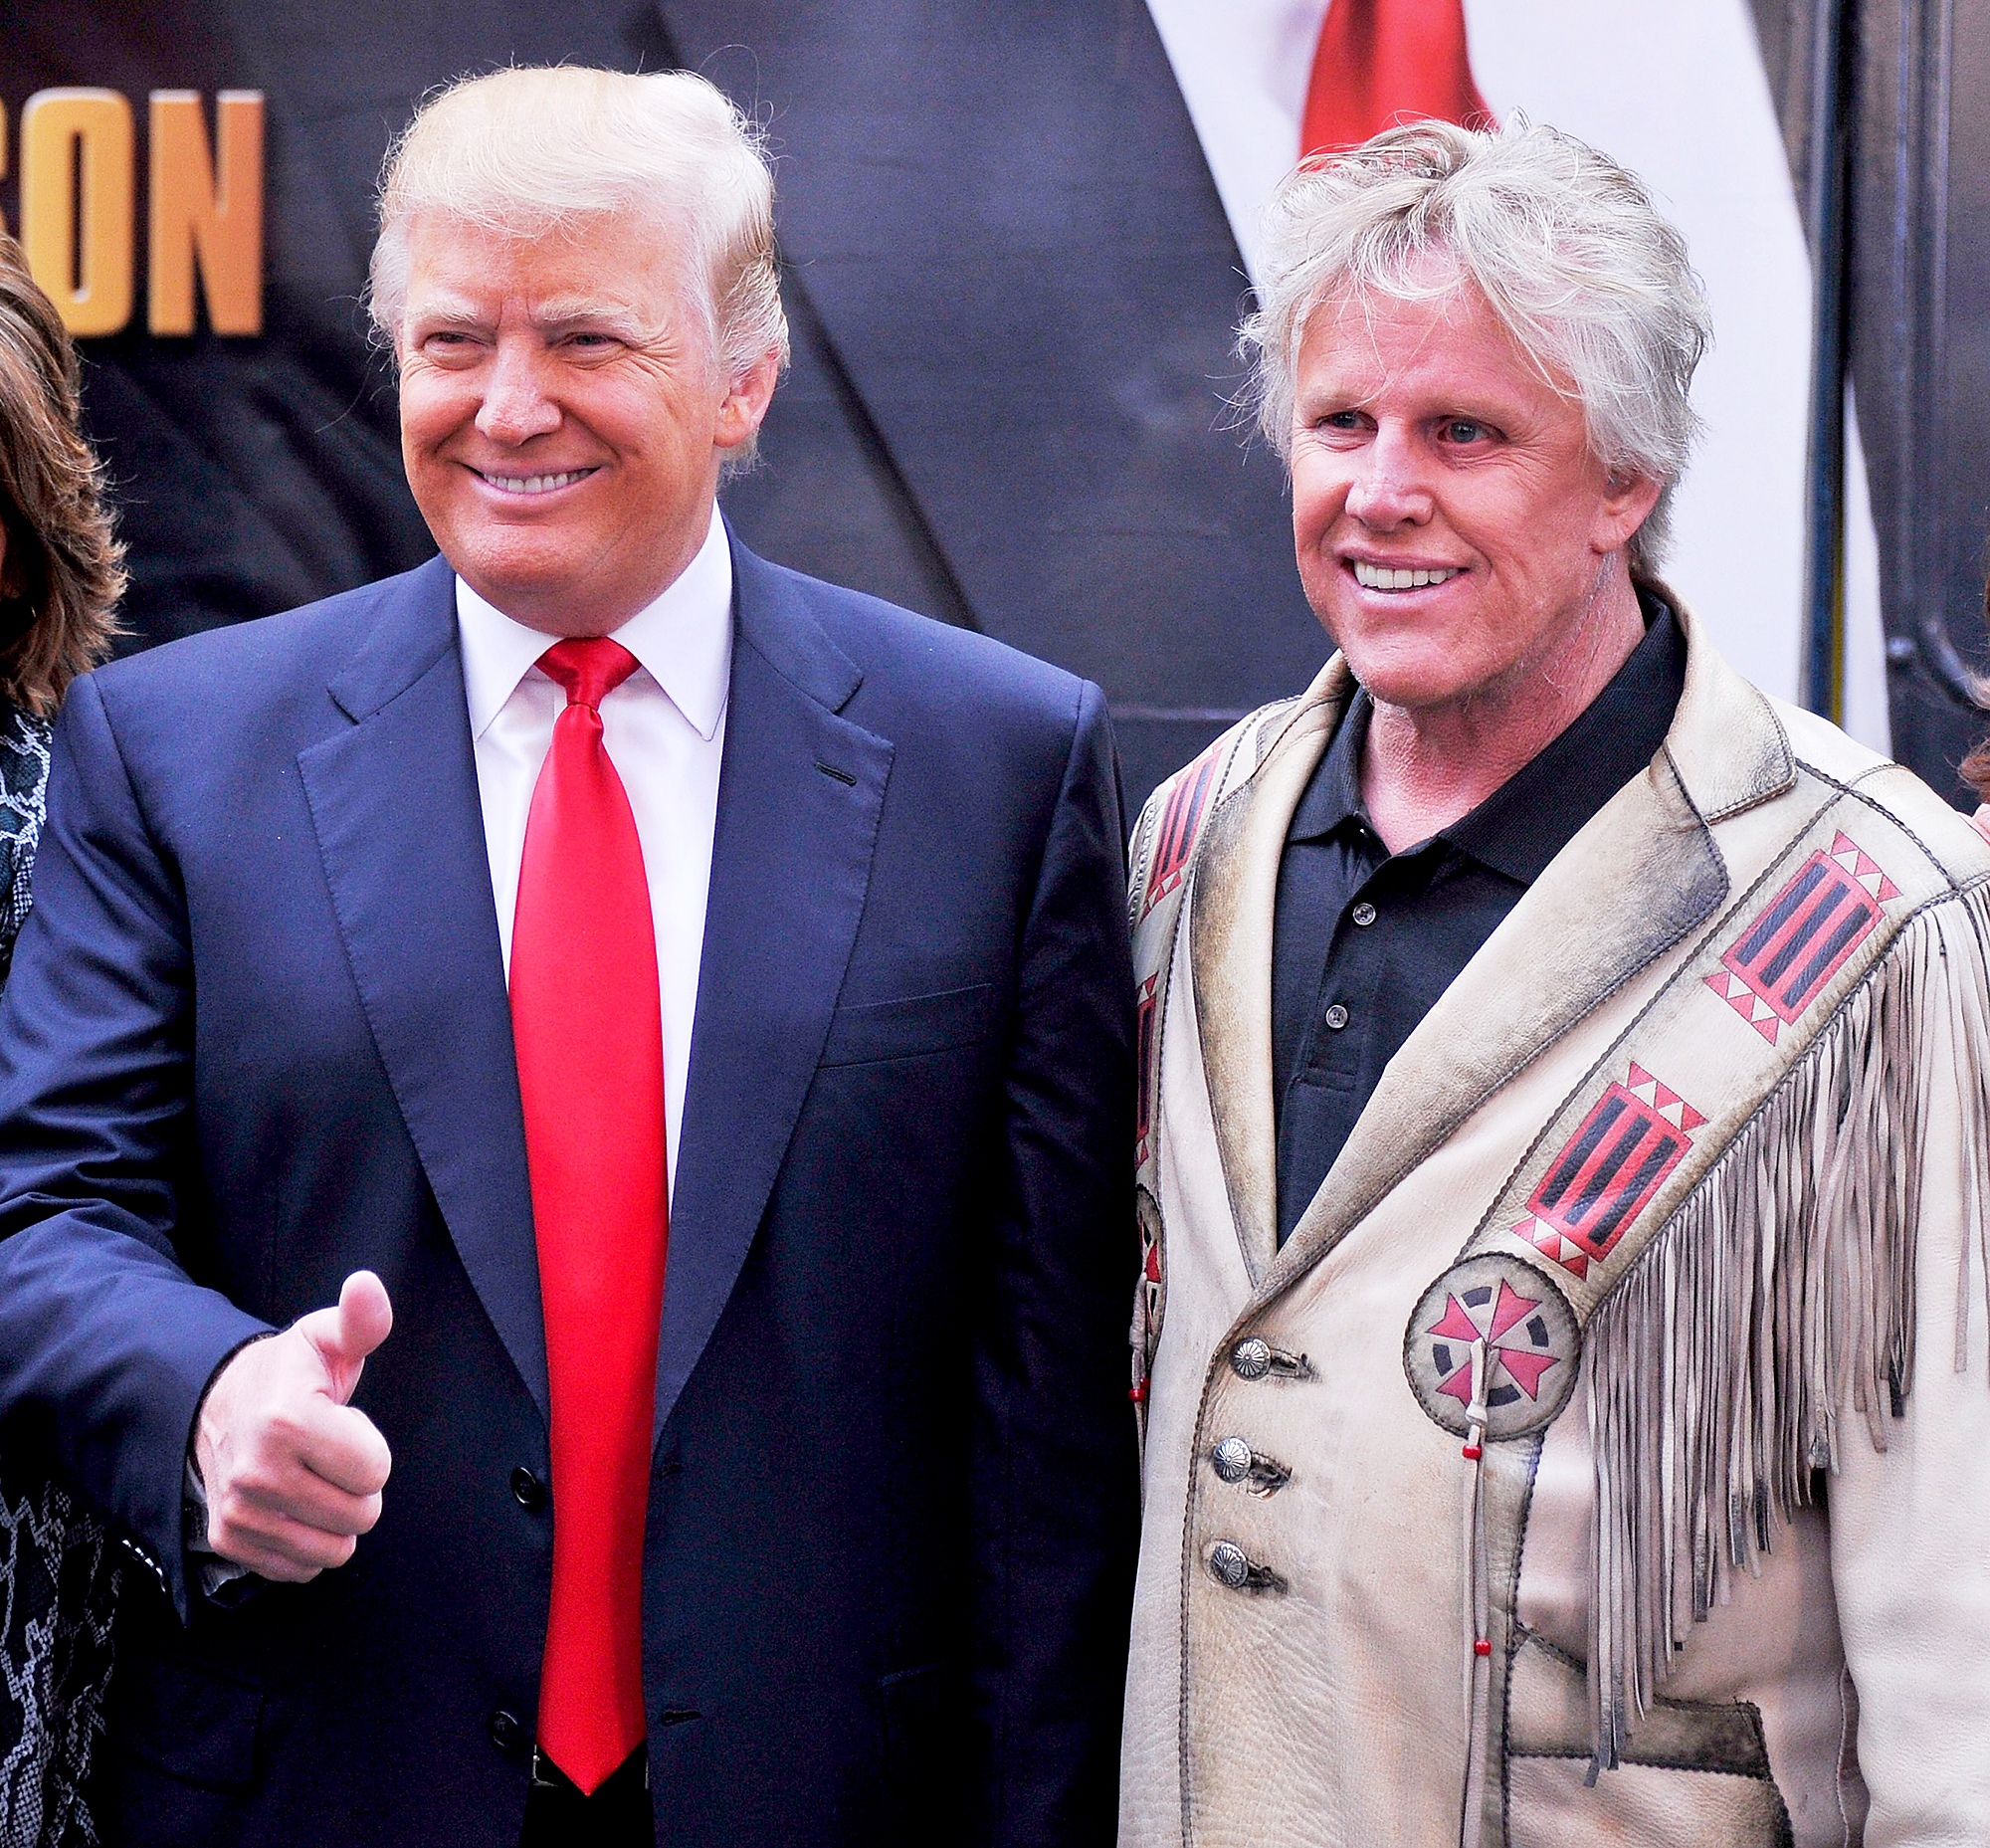 Donald Trump and Gary Busey